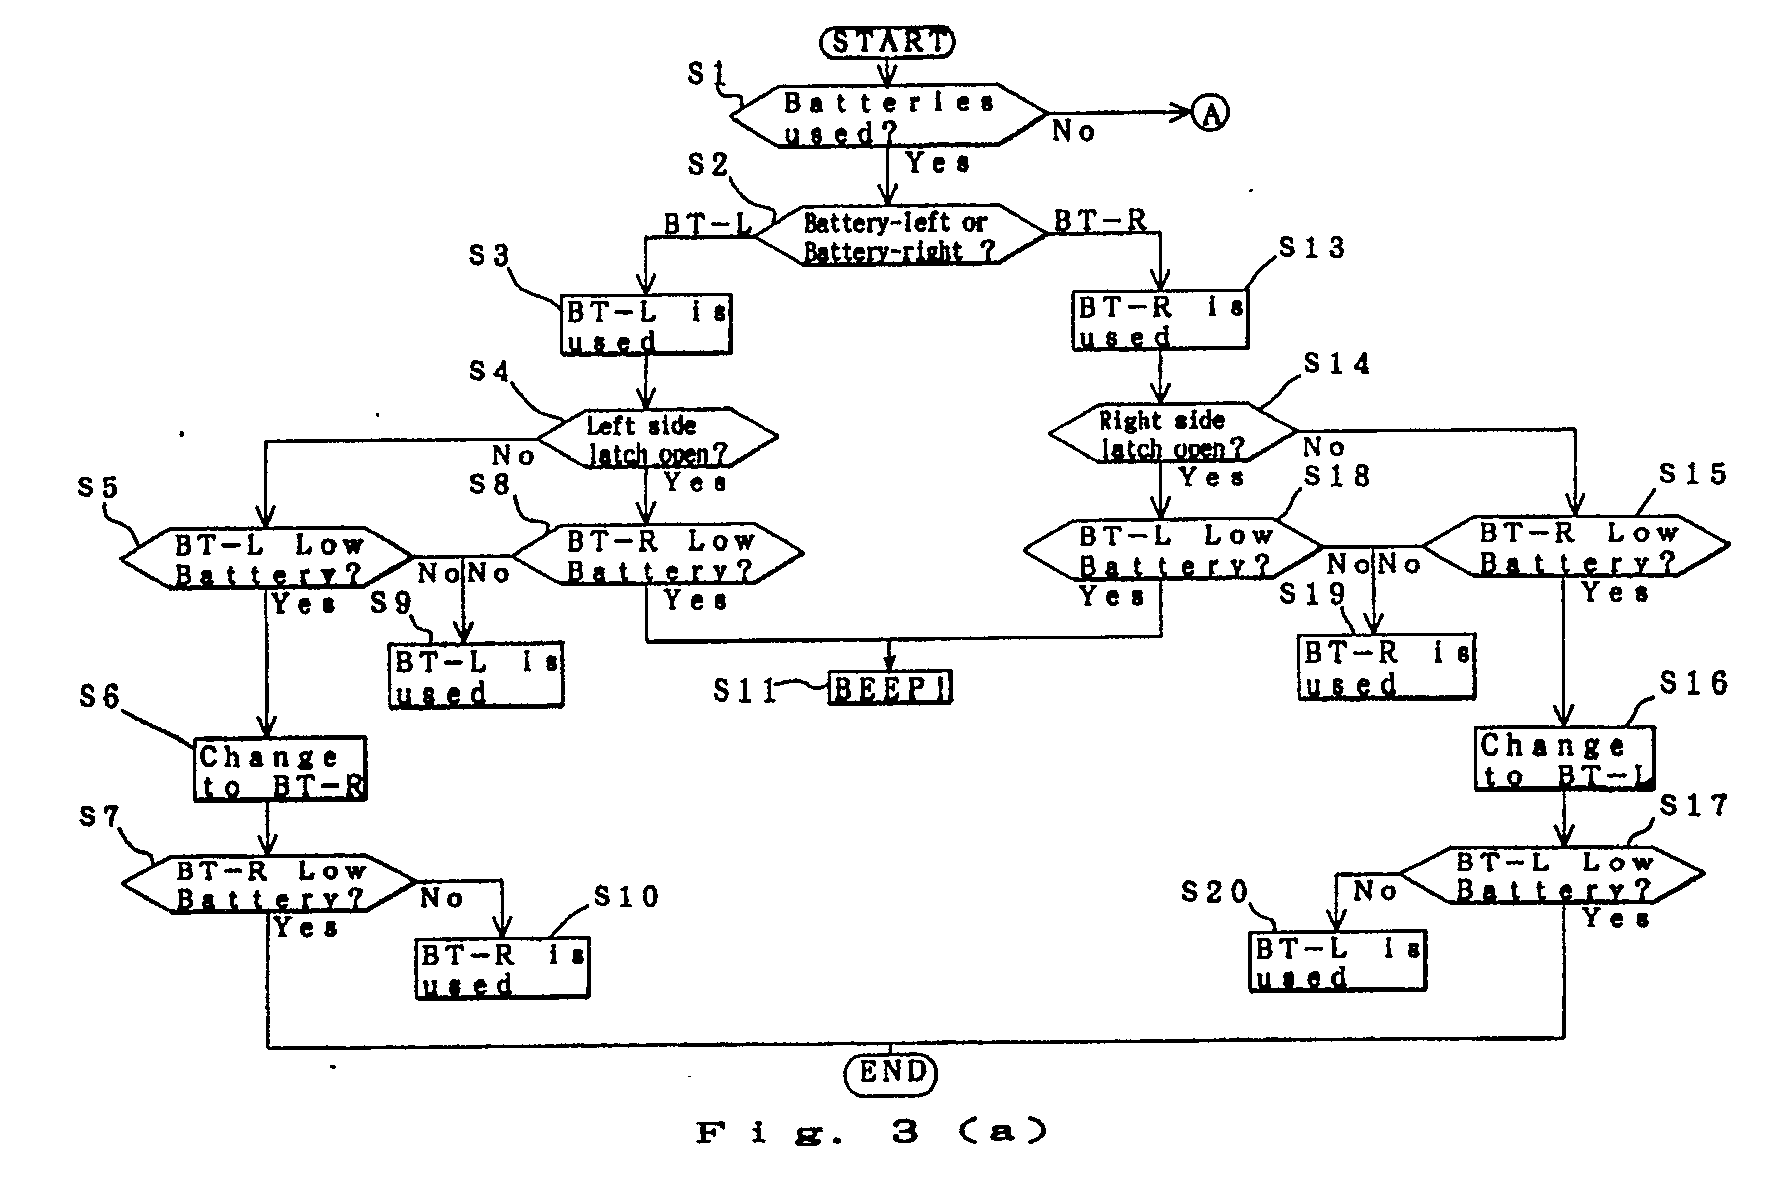 Ep0420645a2 An Intelligent Power Supply System For A Portable Atx Wiring Diagram Schematic Figure Imga0001